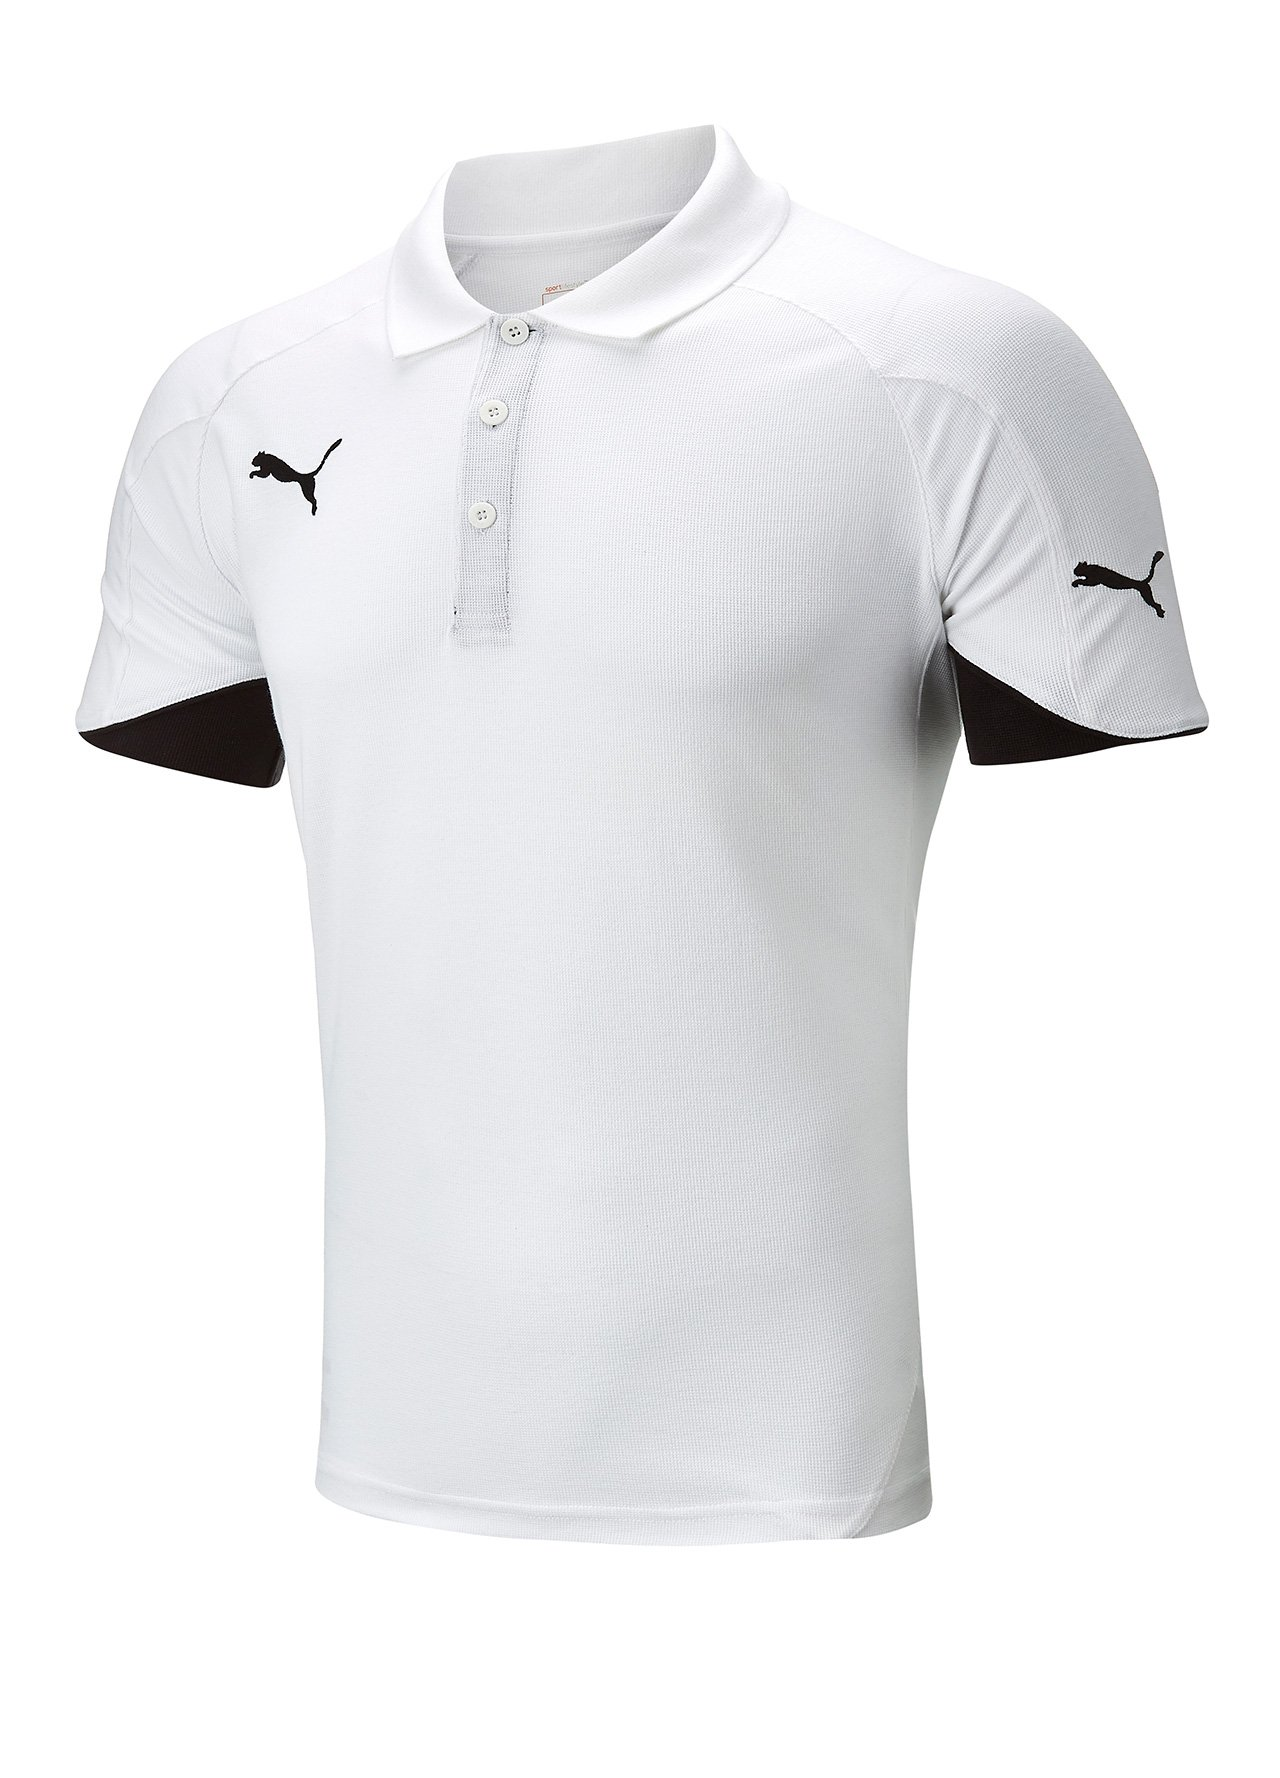 Puma powercat golf polo shirt white medium ebay